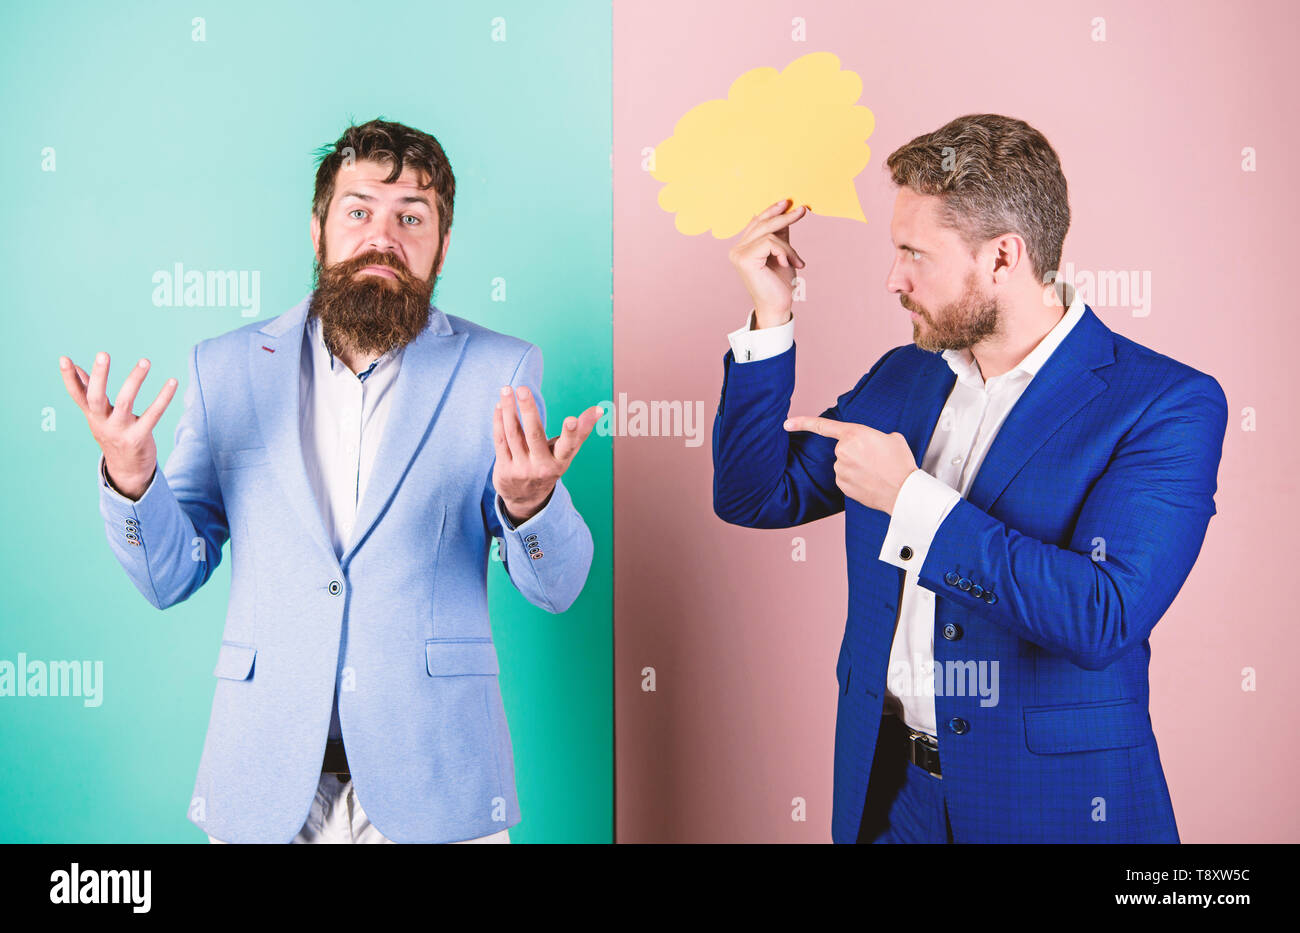 Business misunderstanding. Business team work on solving problem. Share opinion speech bubble copy space. Businessmen thoughtful face thinking about business problem. Business in trouble concept. - Stock Image